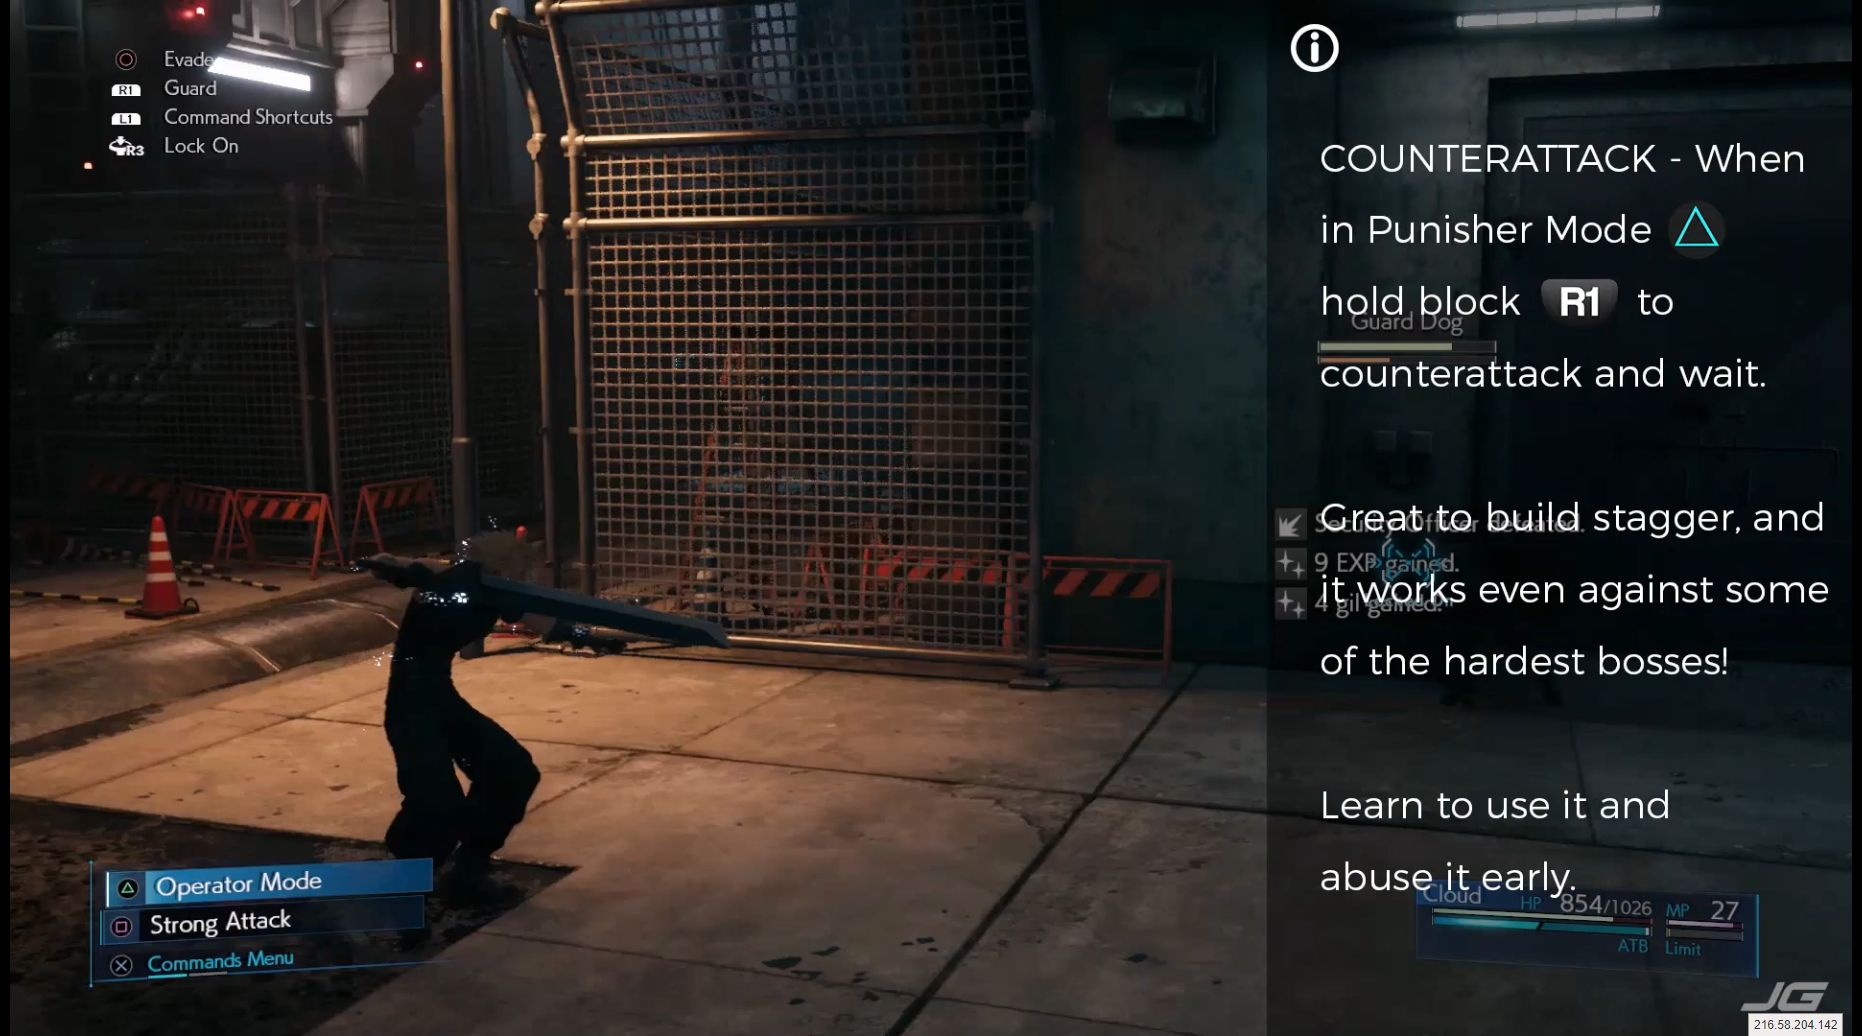 COUNTERATTACK - When in Punisher Mode (Triangle), hold block (R1) to counterattack and wait, Great to build stagger, and it works even against some of the hardest bosses! Learn to use it and abuse it early